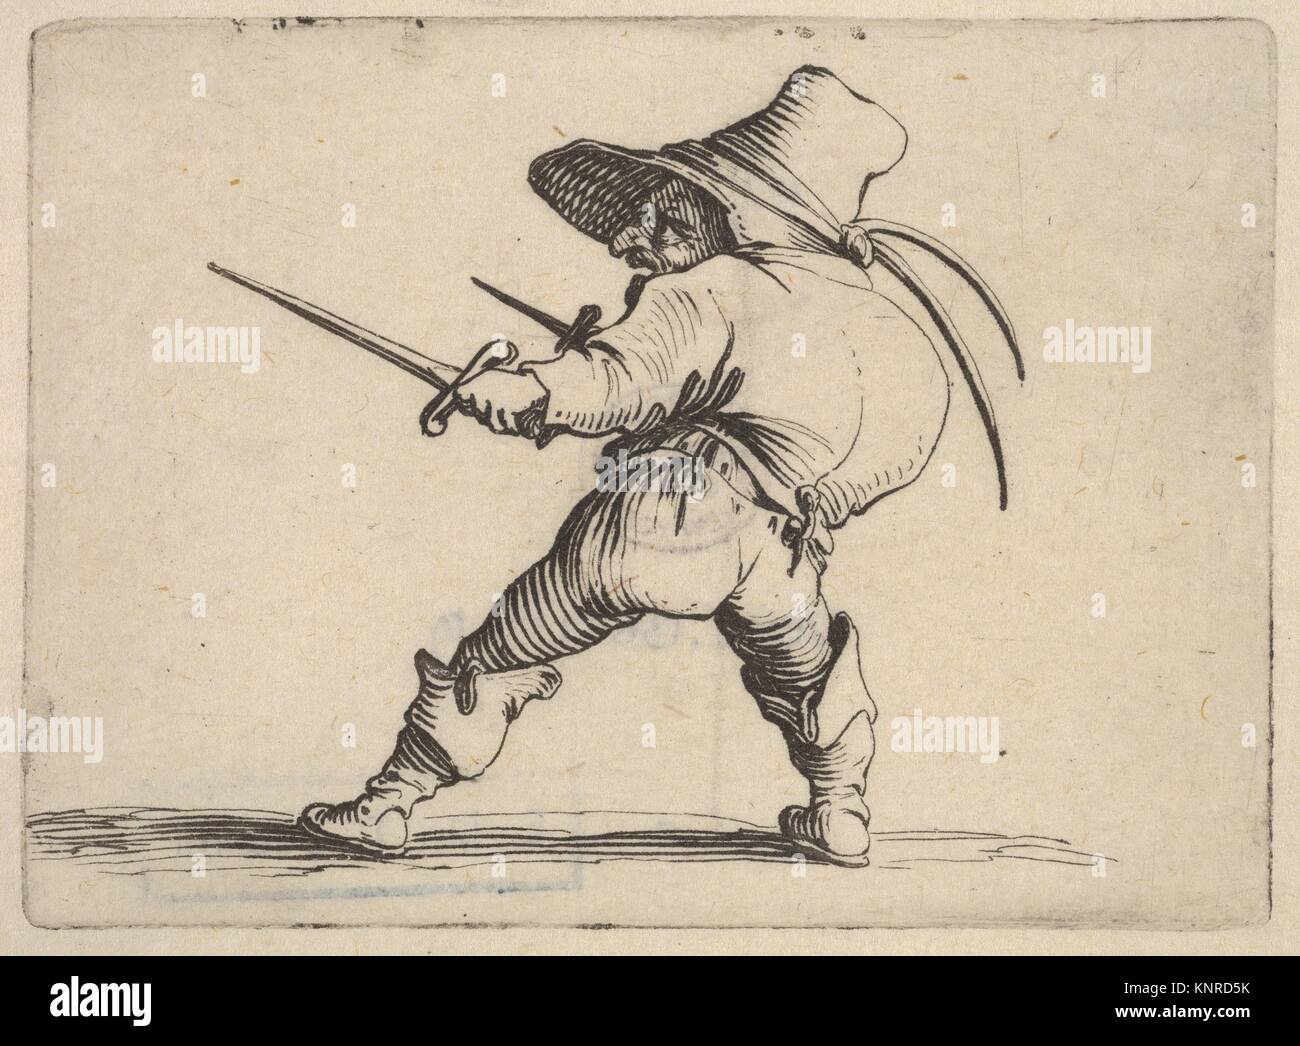 Small male figure wearing a hat, with daggers in both hands, and placing his weight on his right foot as he stretches - Stock Image